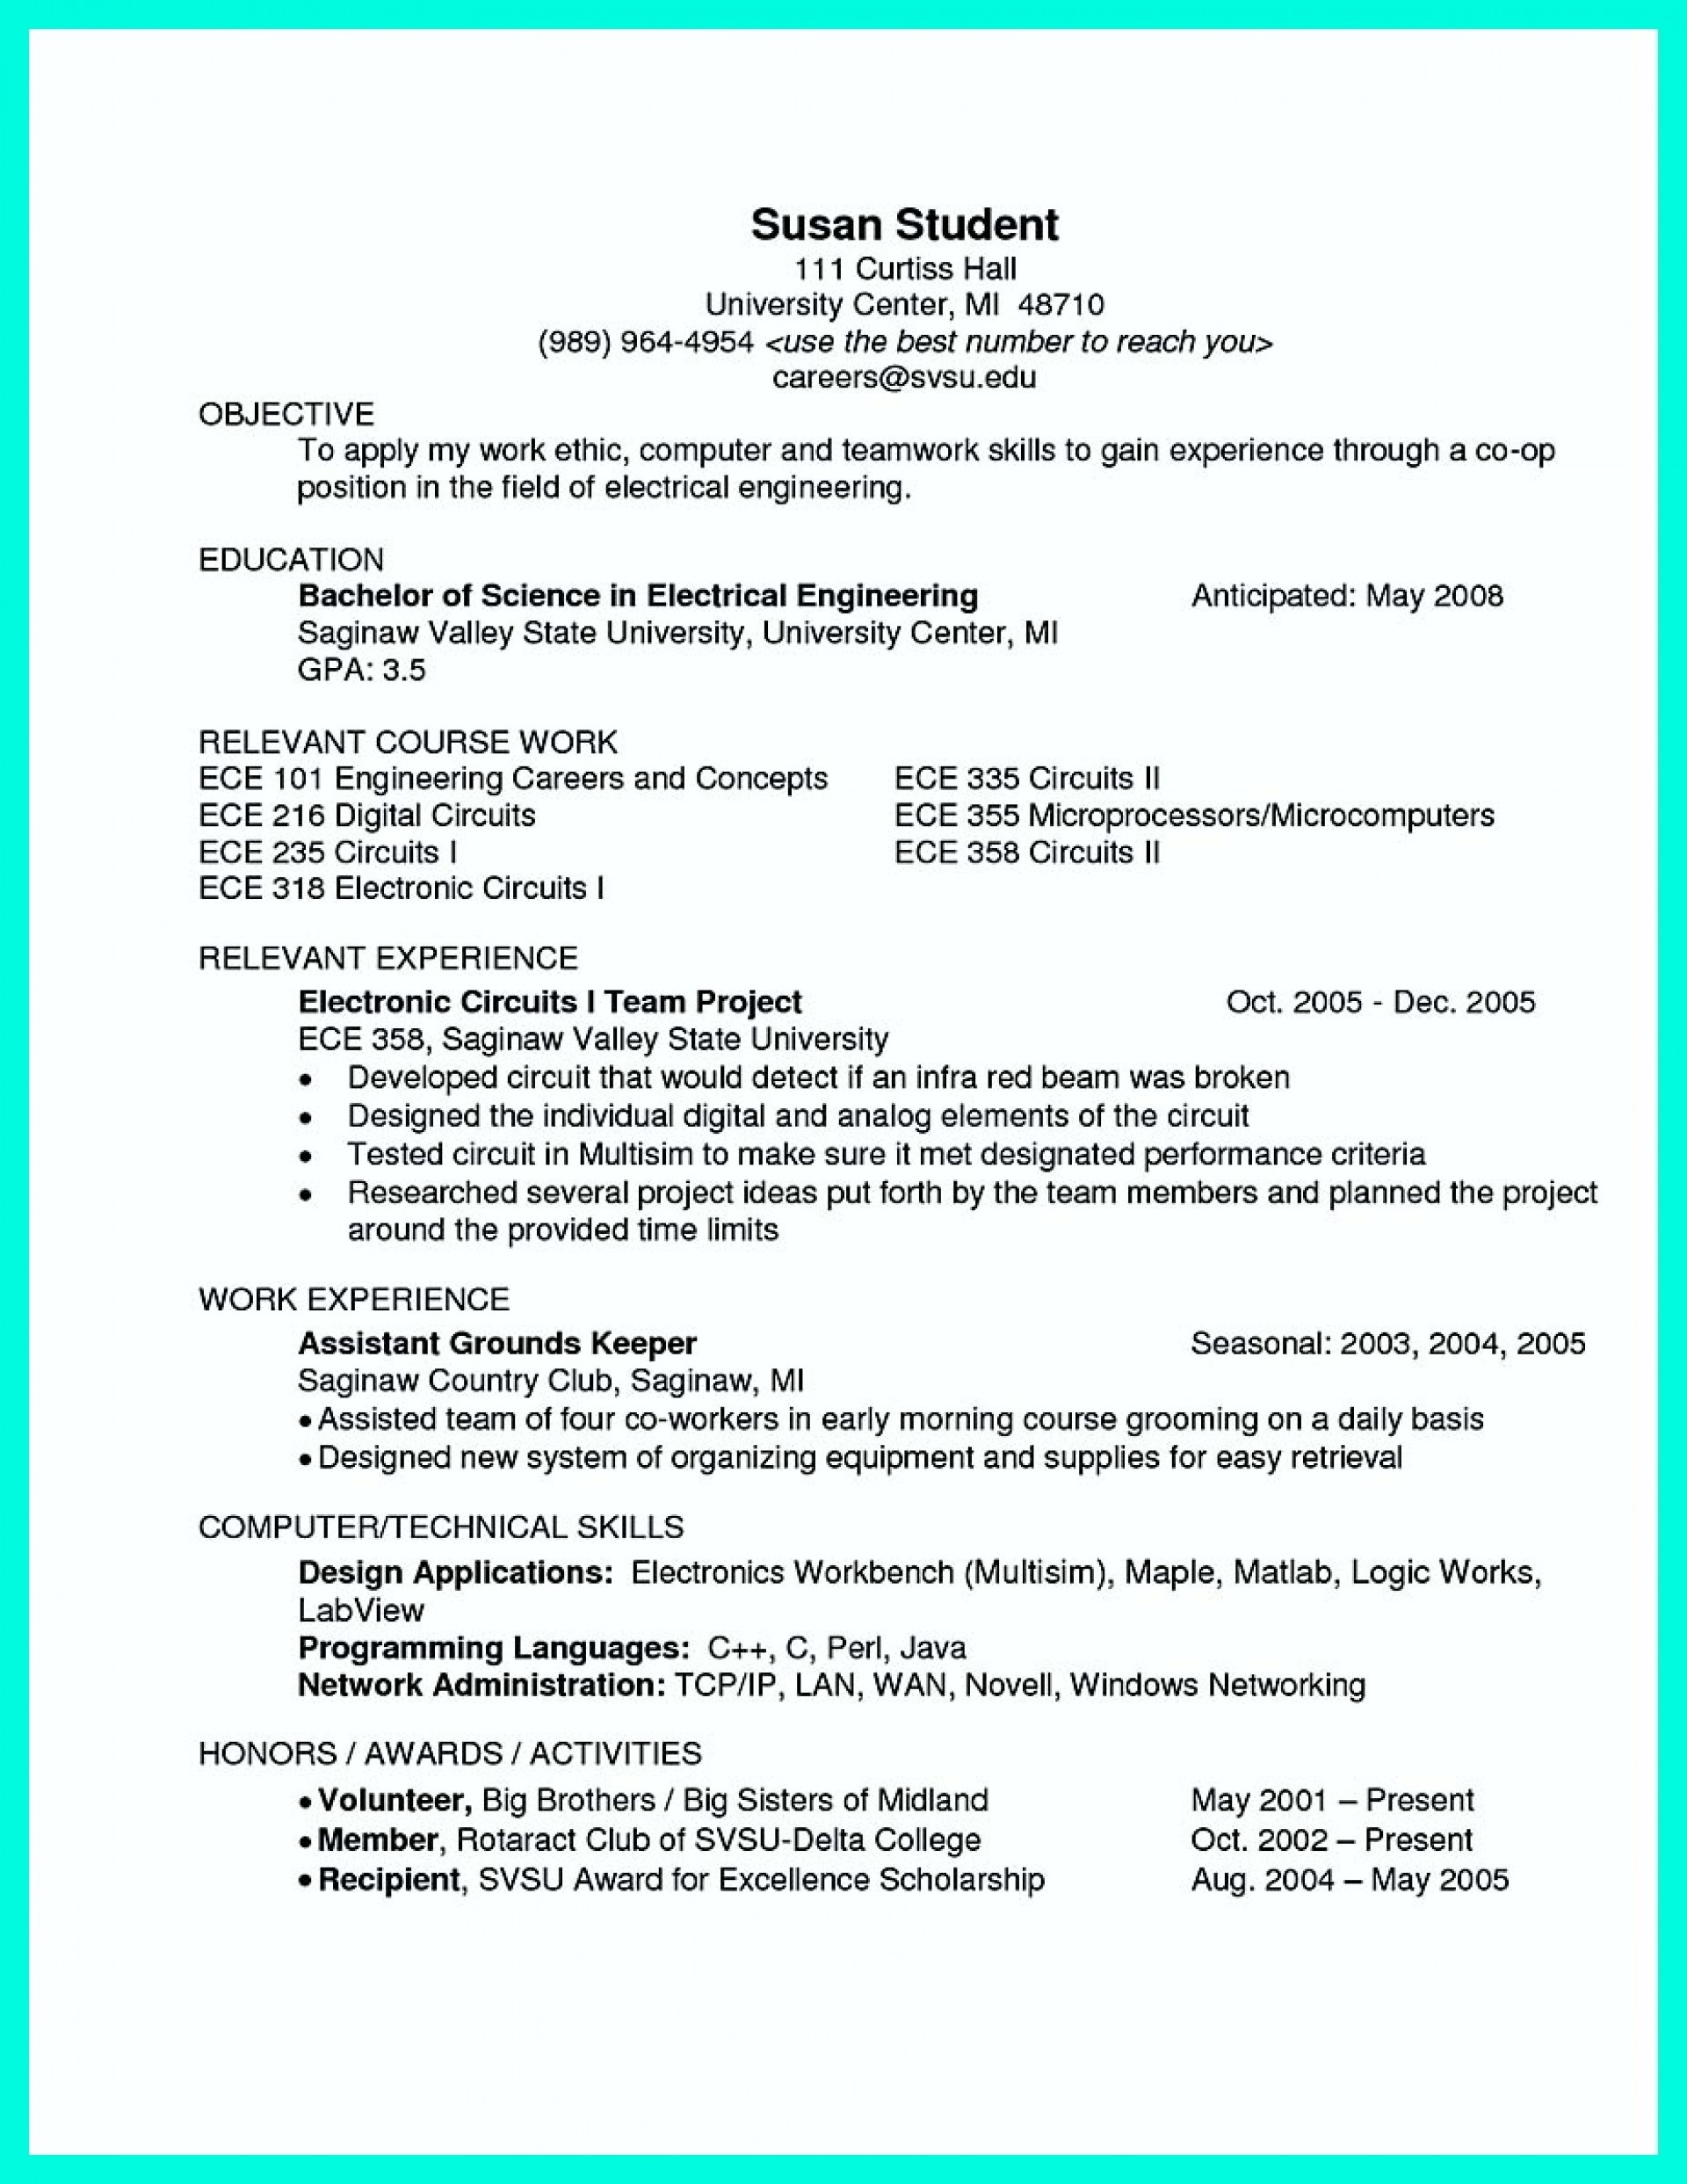 019 Research Paper Easy Topics In Computer Science Computer20eering Resume Cover Letter Electrical Write Essay Job Papers Singular 1920